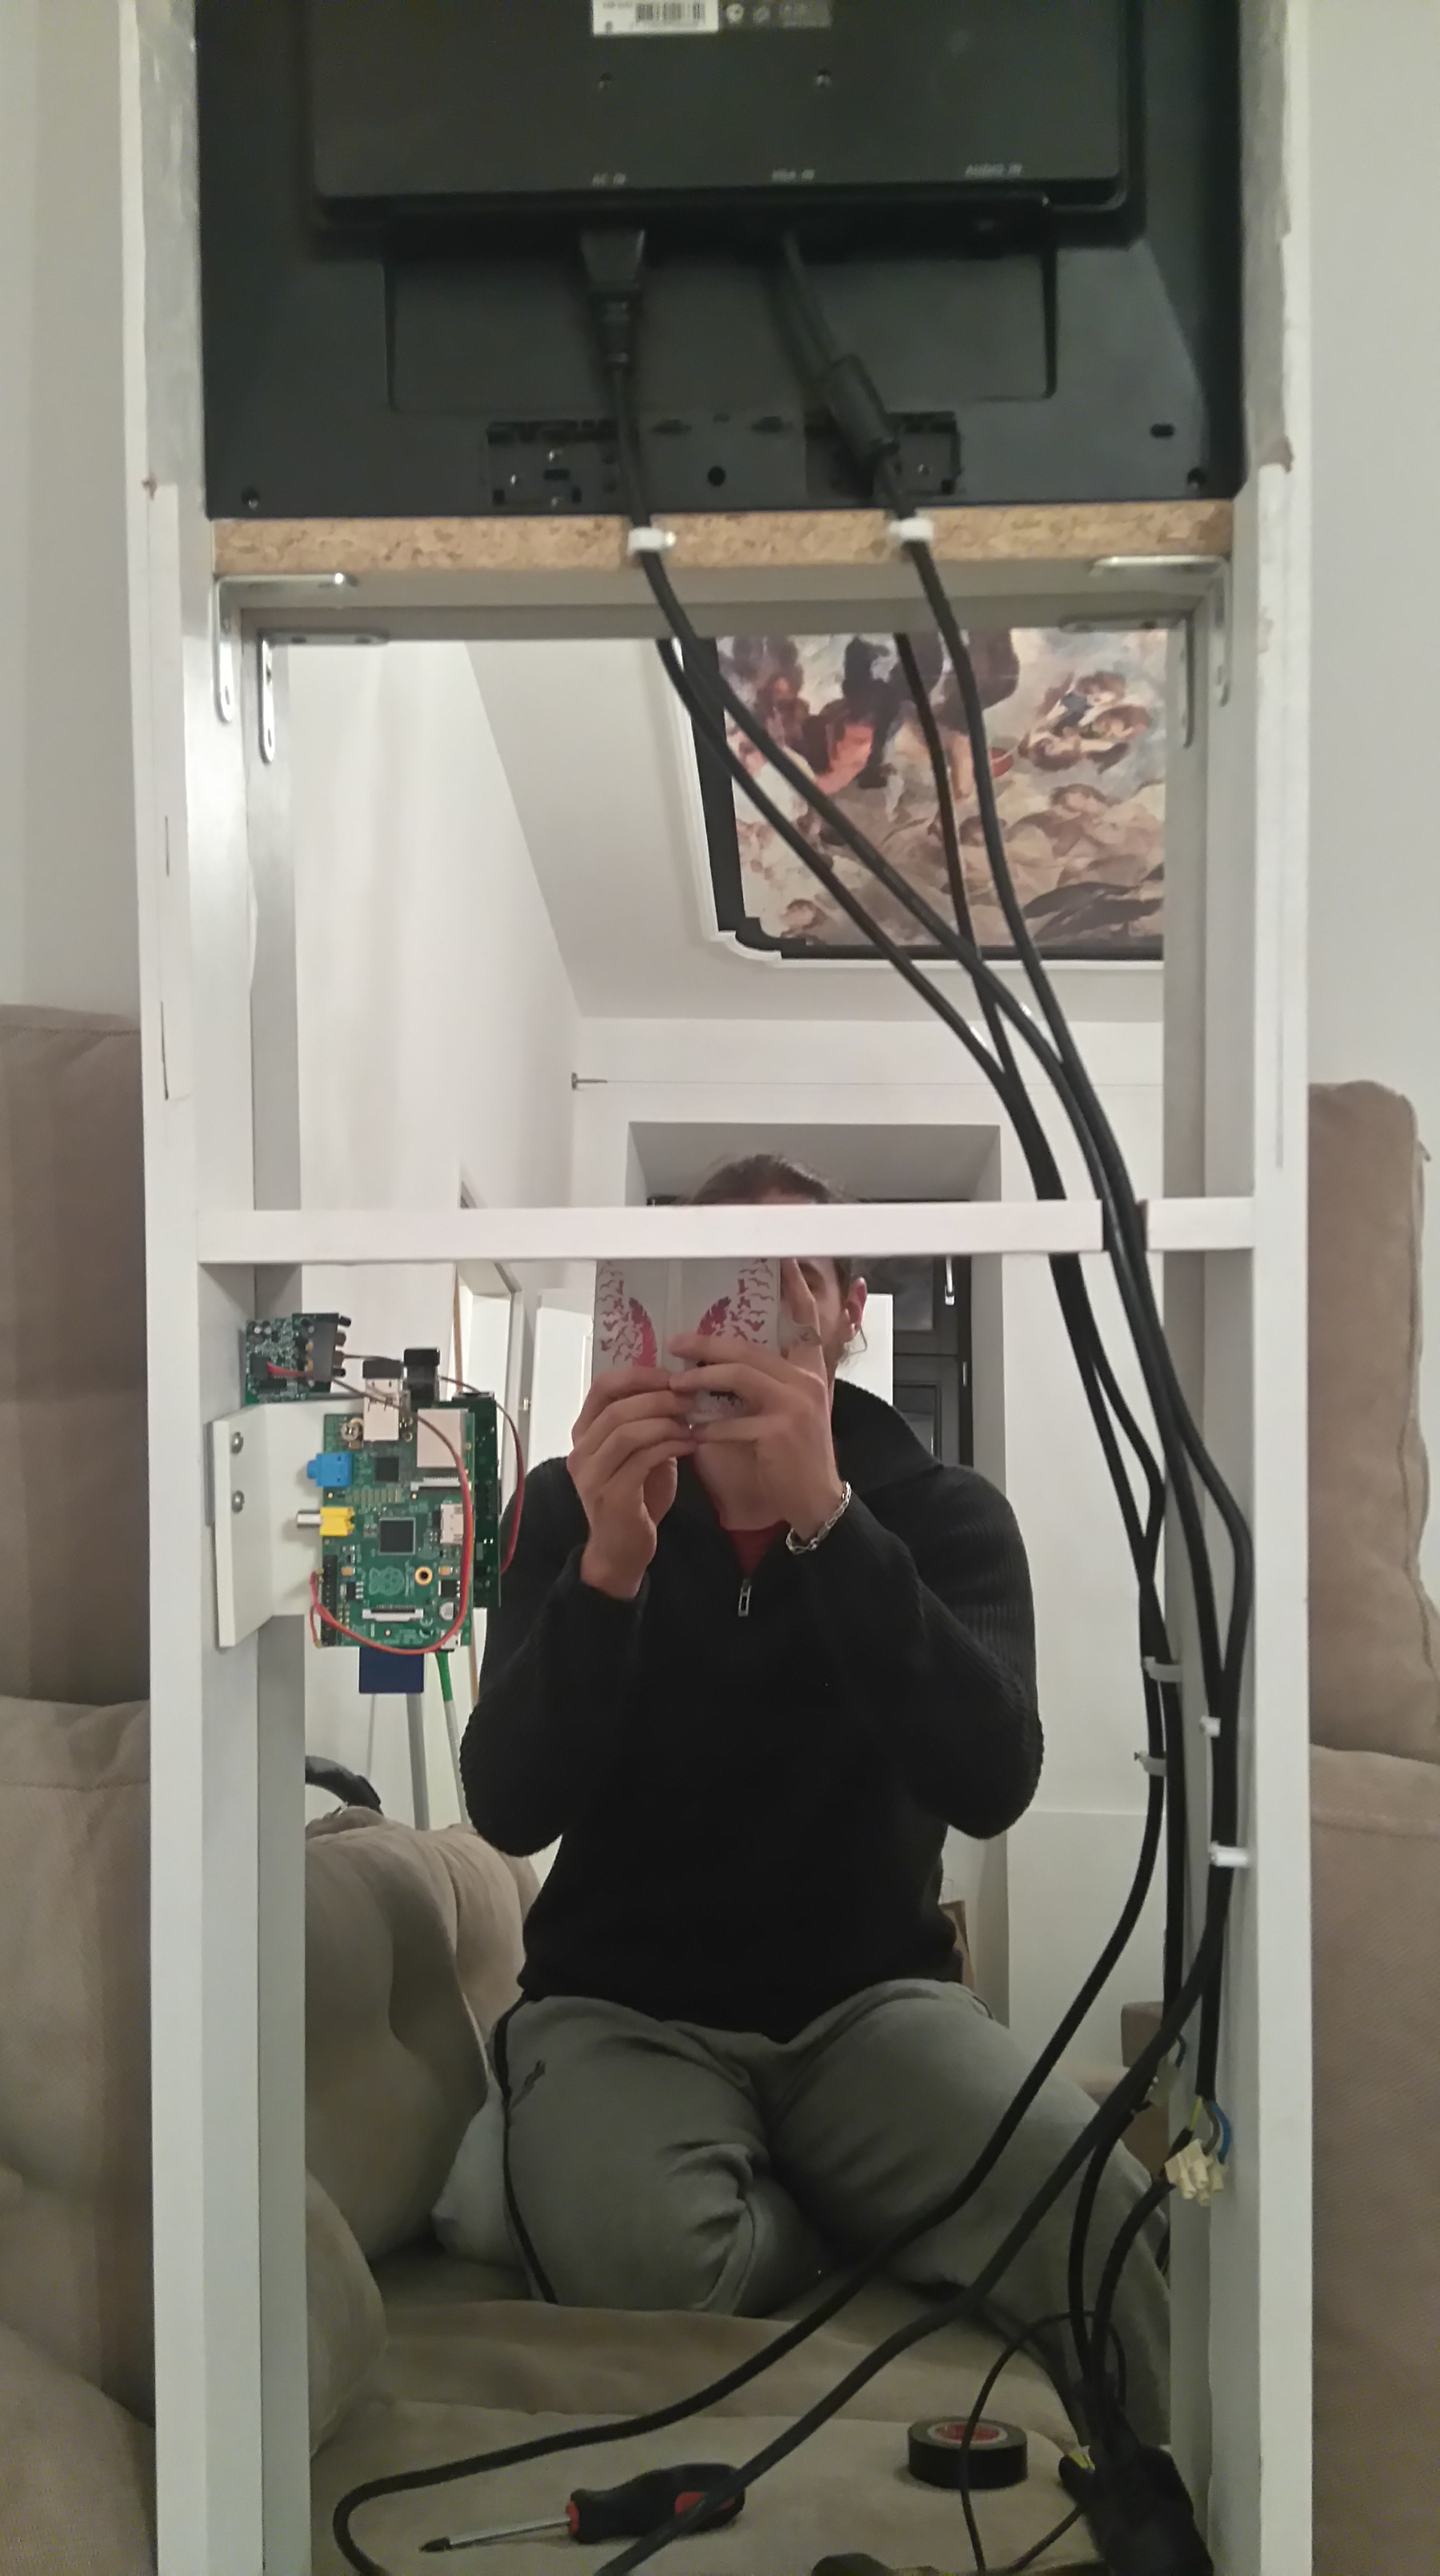 Magic Mirror With A Motion Detector Helentronica Microcontroller Based Diy Project For Power Saving Using Pir Sensor Back Side Of My The Nested Above Pi Aiming Through